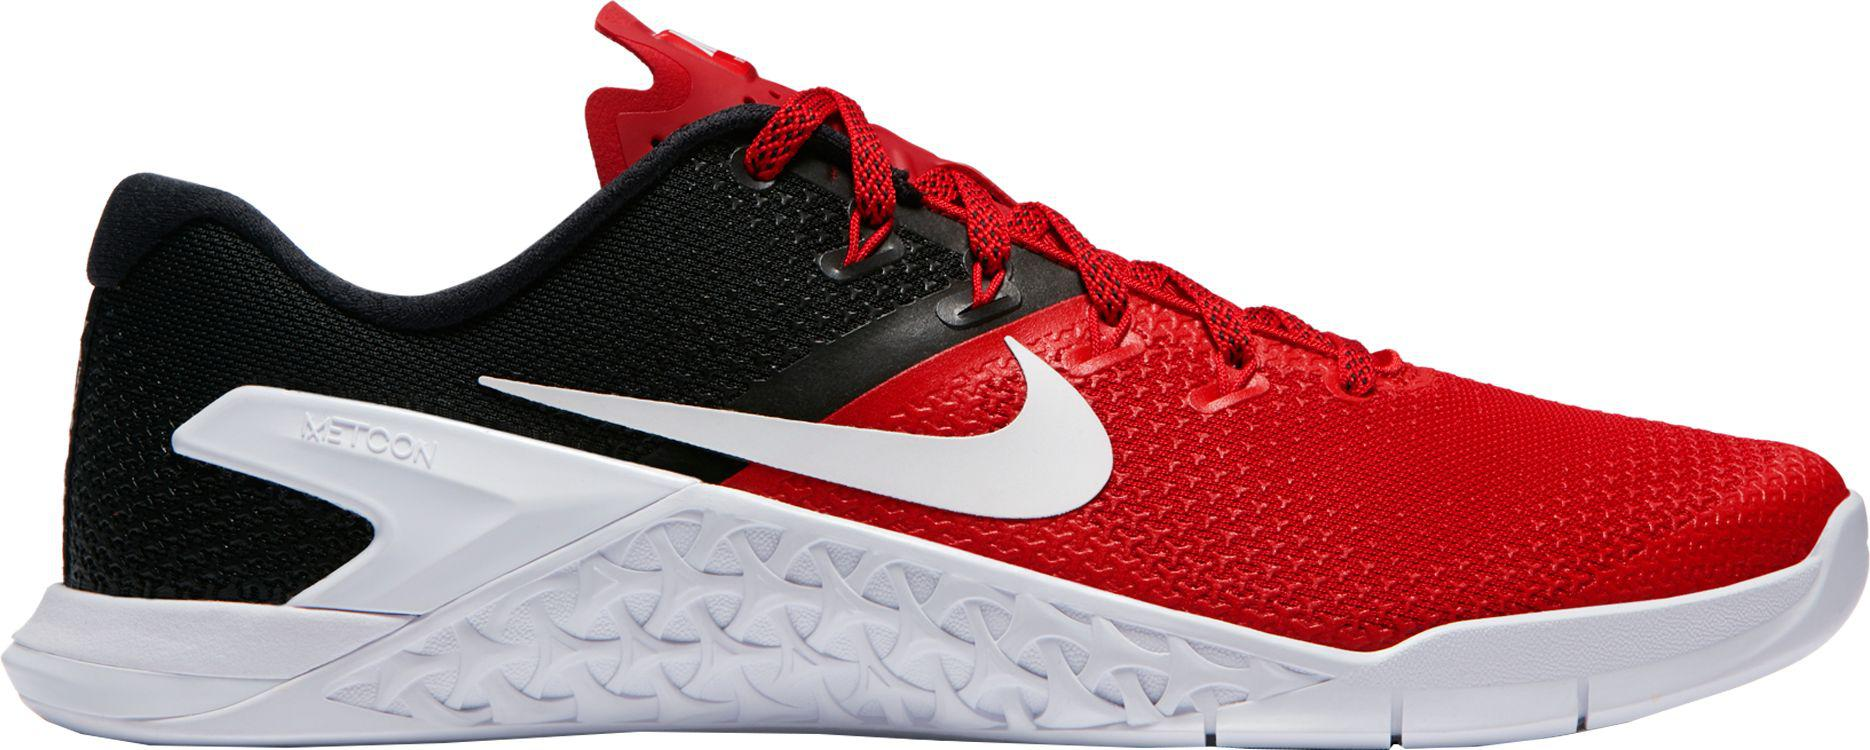 155a1c9de0214 Lyst - Nike Metcon 4 Training Shoes in Red for Men - Save 33%